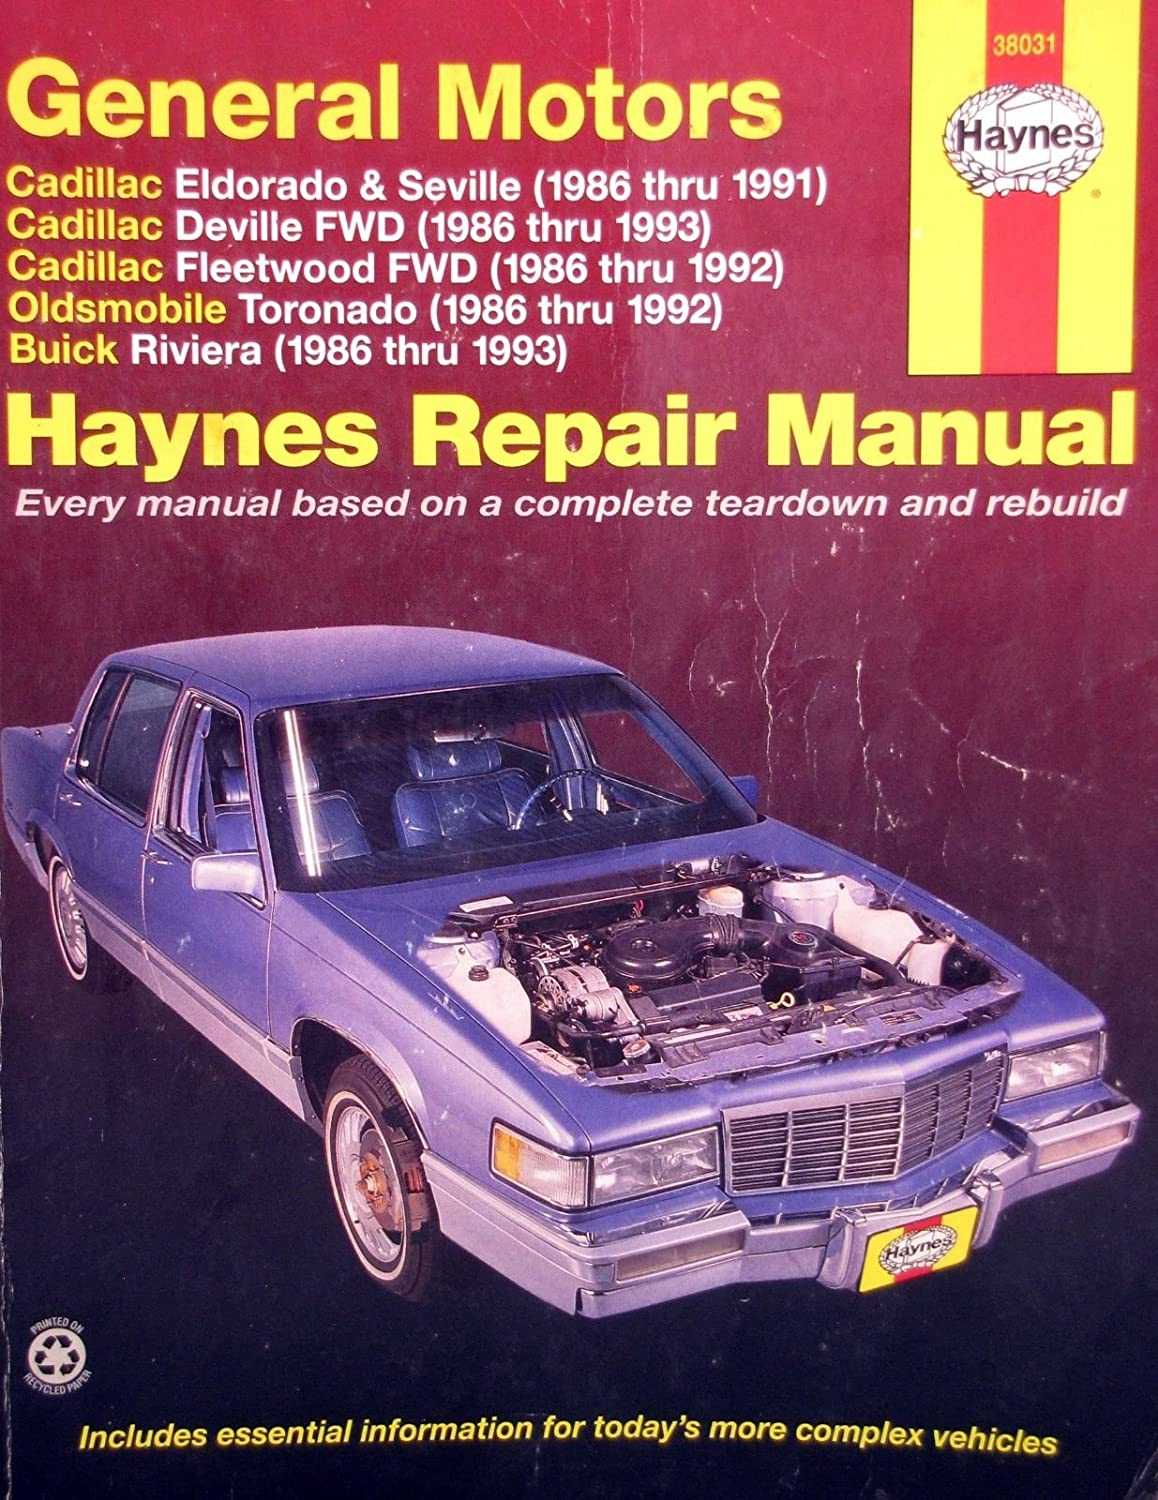 Amazon.com : 1986-1993 Haynes Repair Manual - Cadillac FWD Cars - #38031 :  Everything Else